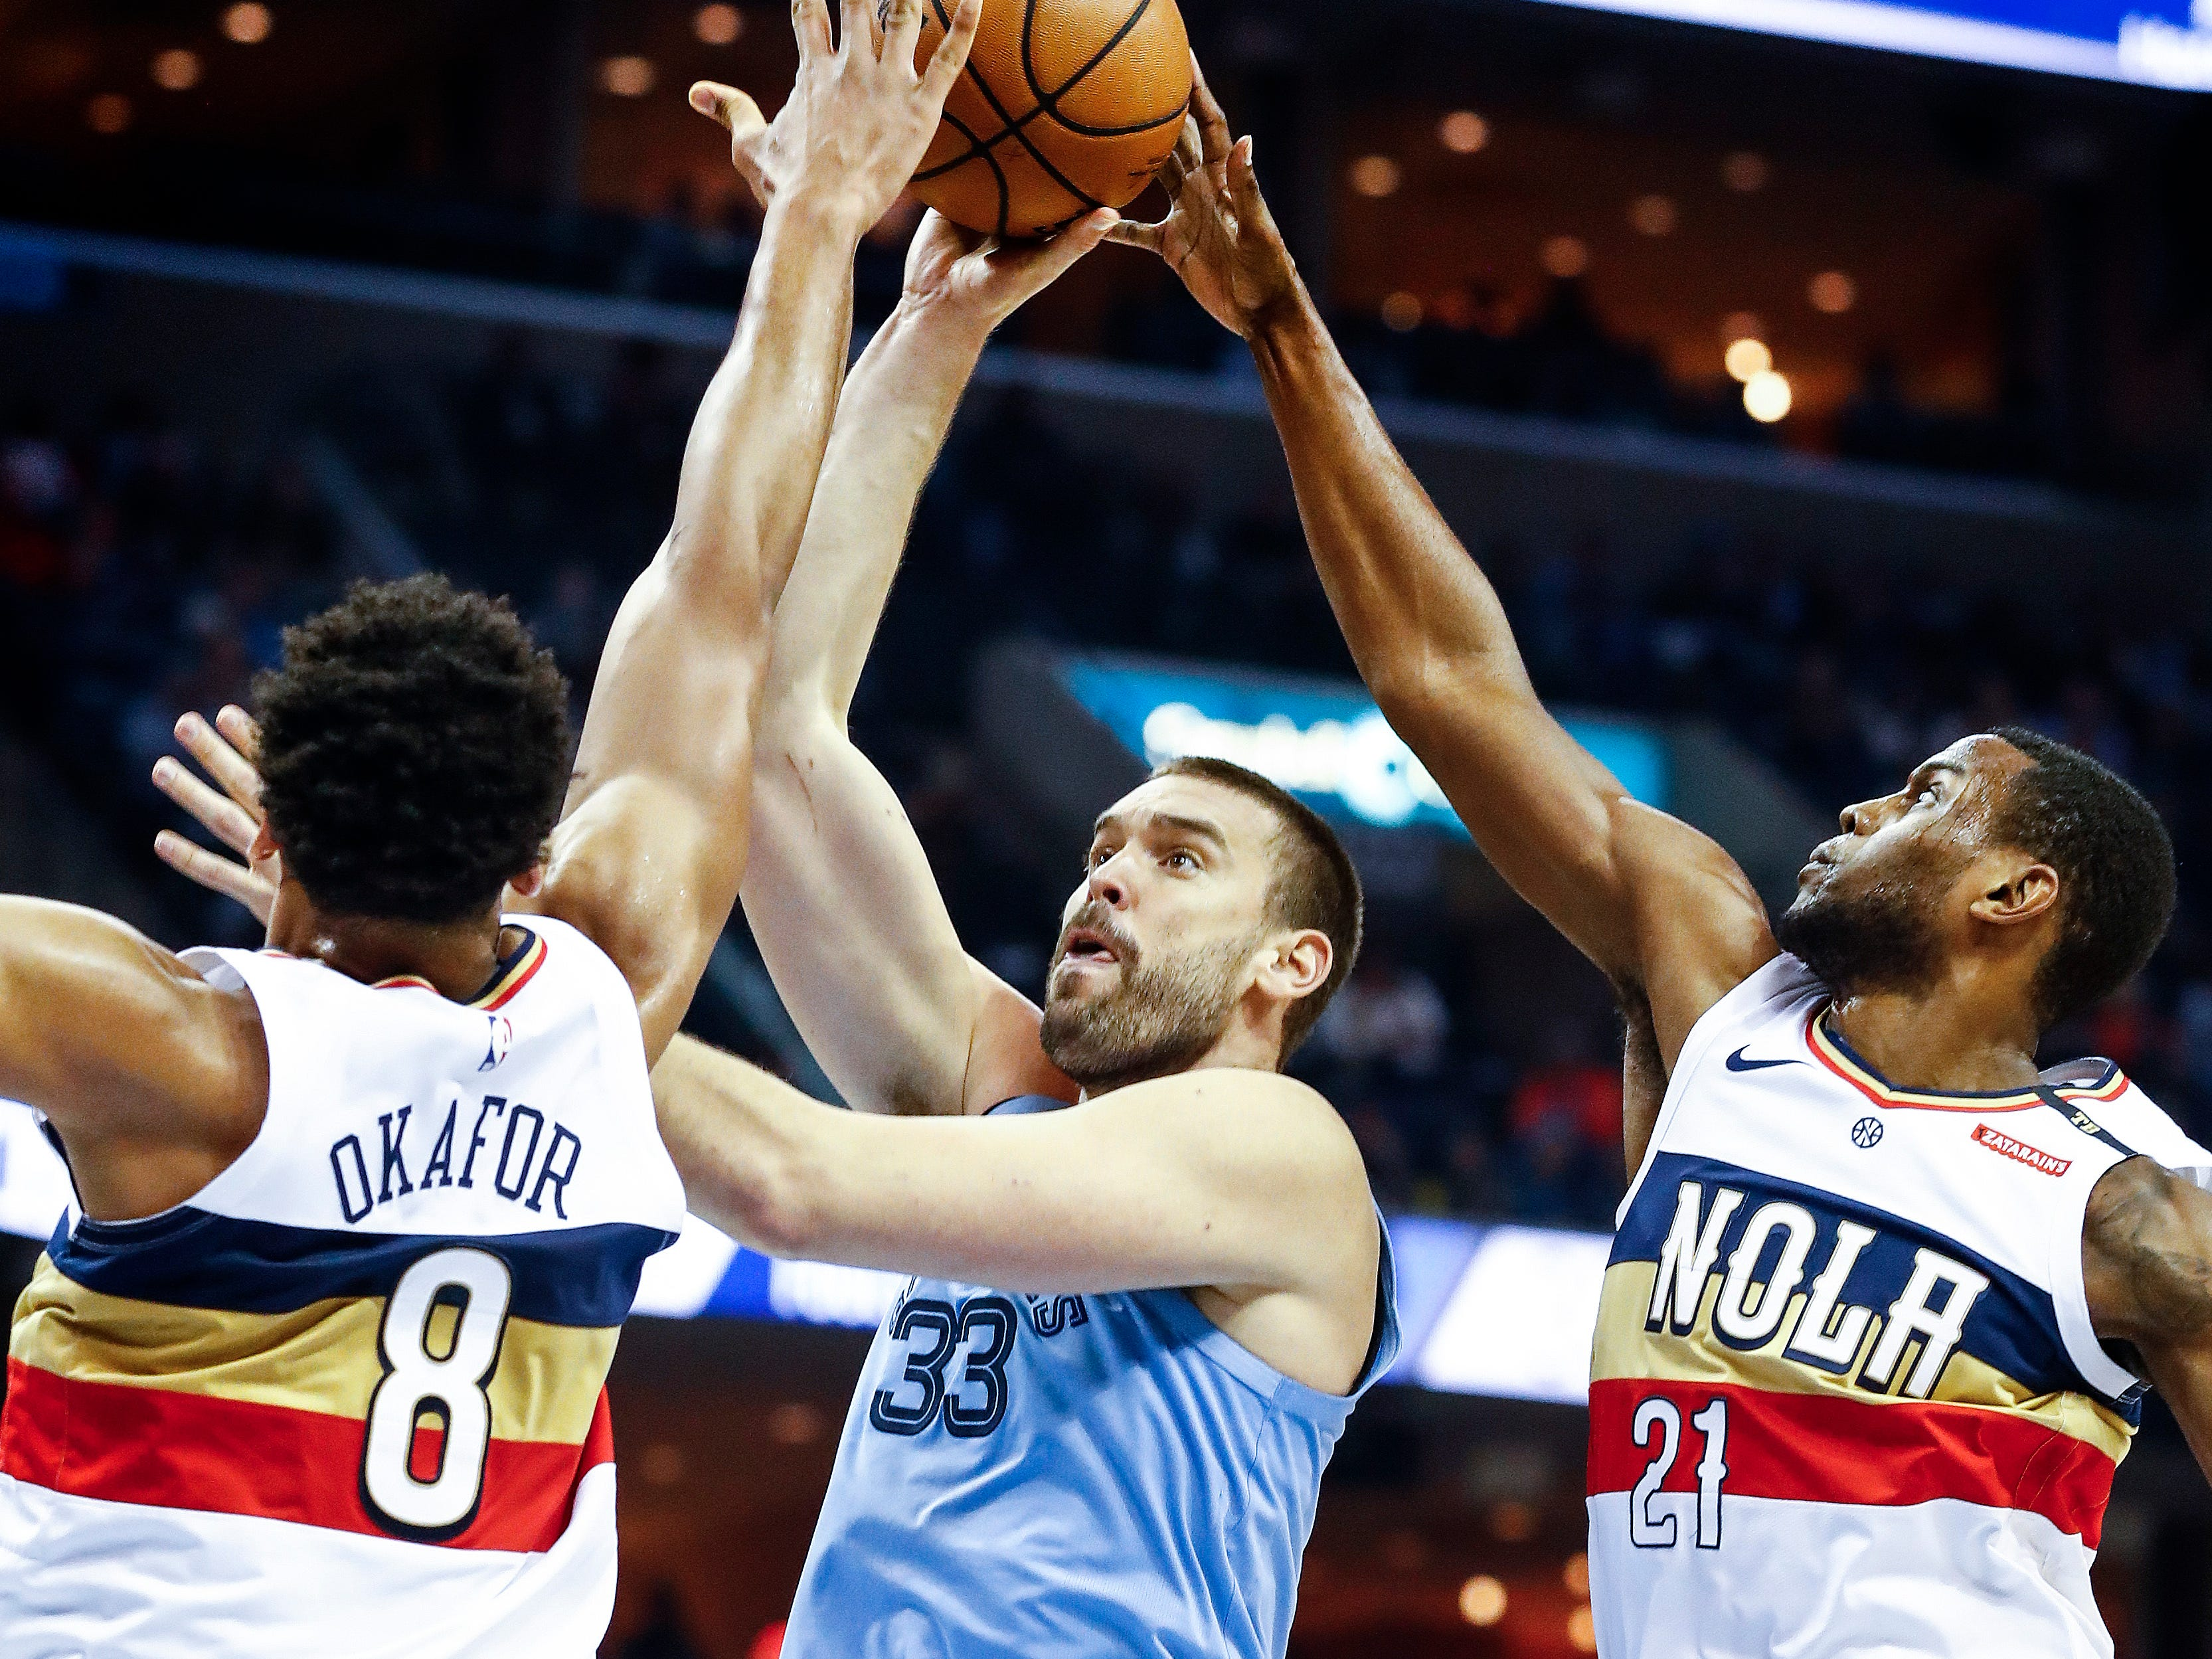 Memphis Grizzlies center Marc Gasol (middle) put up a shot against New Orleans Pelicans defenders Jahlil Okafor (left) and Darius Miller (right) during action at the FedExForum in Memphis, Tenn., Monday, January 21, 2019.